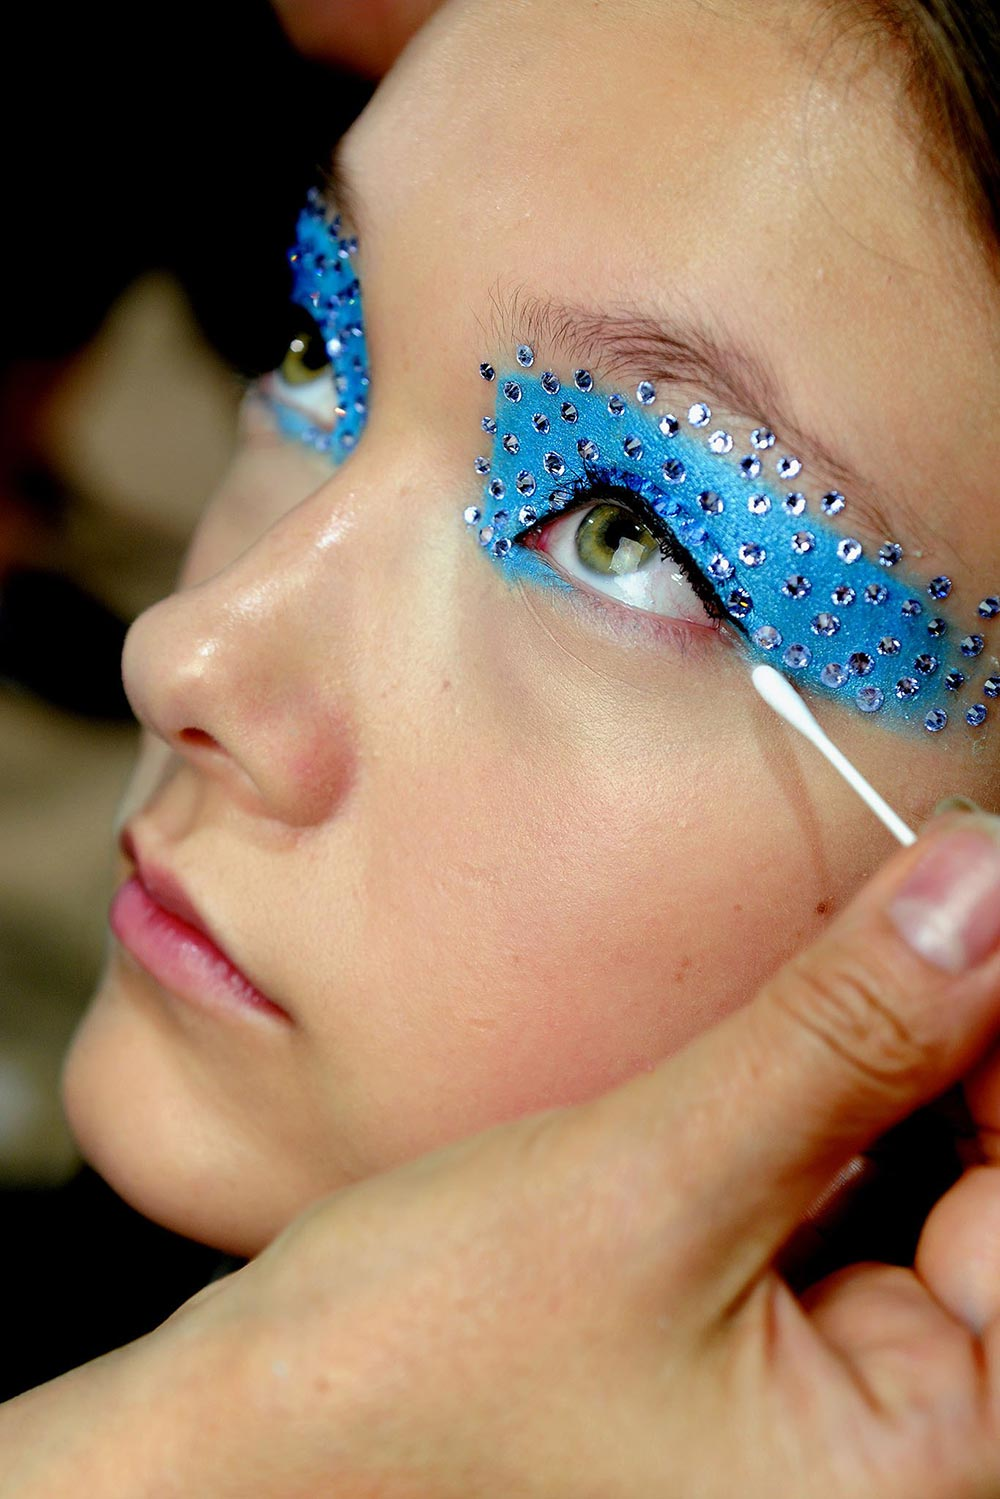 Christian Dior Spring/Summer 2013 rhinestones beauty look